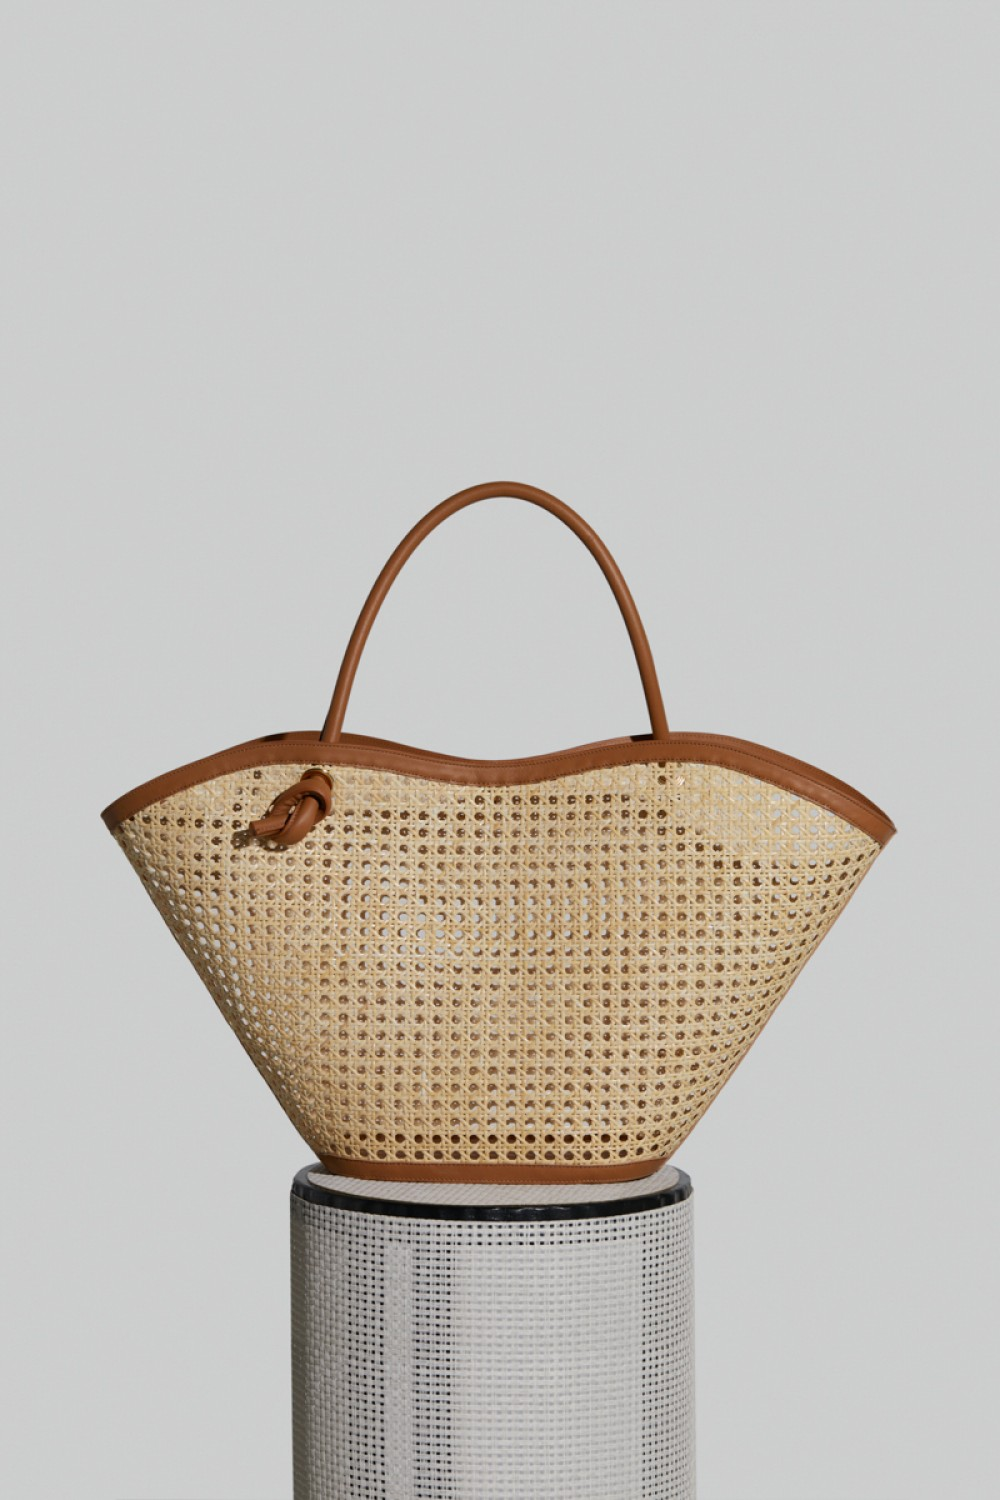 Large Cella Bag in Camel Leather and Chair (PRE-ORDER)